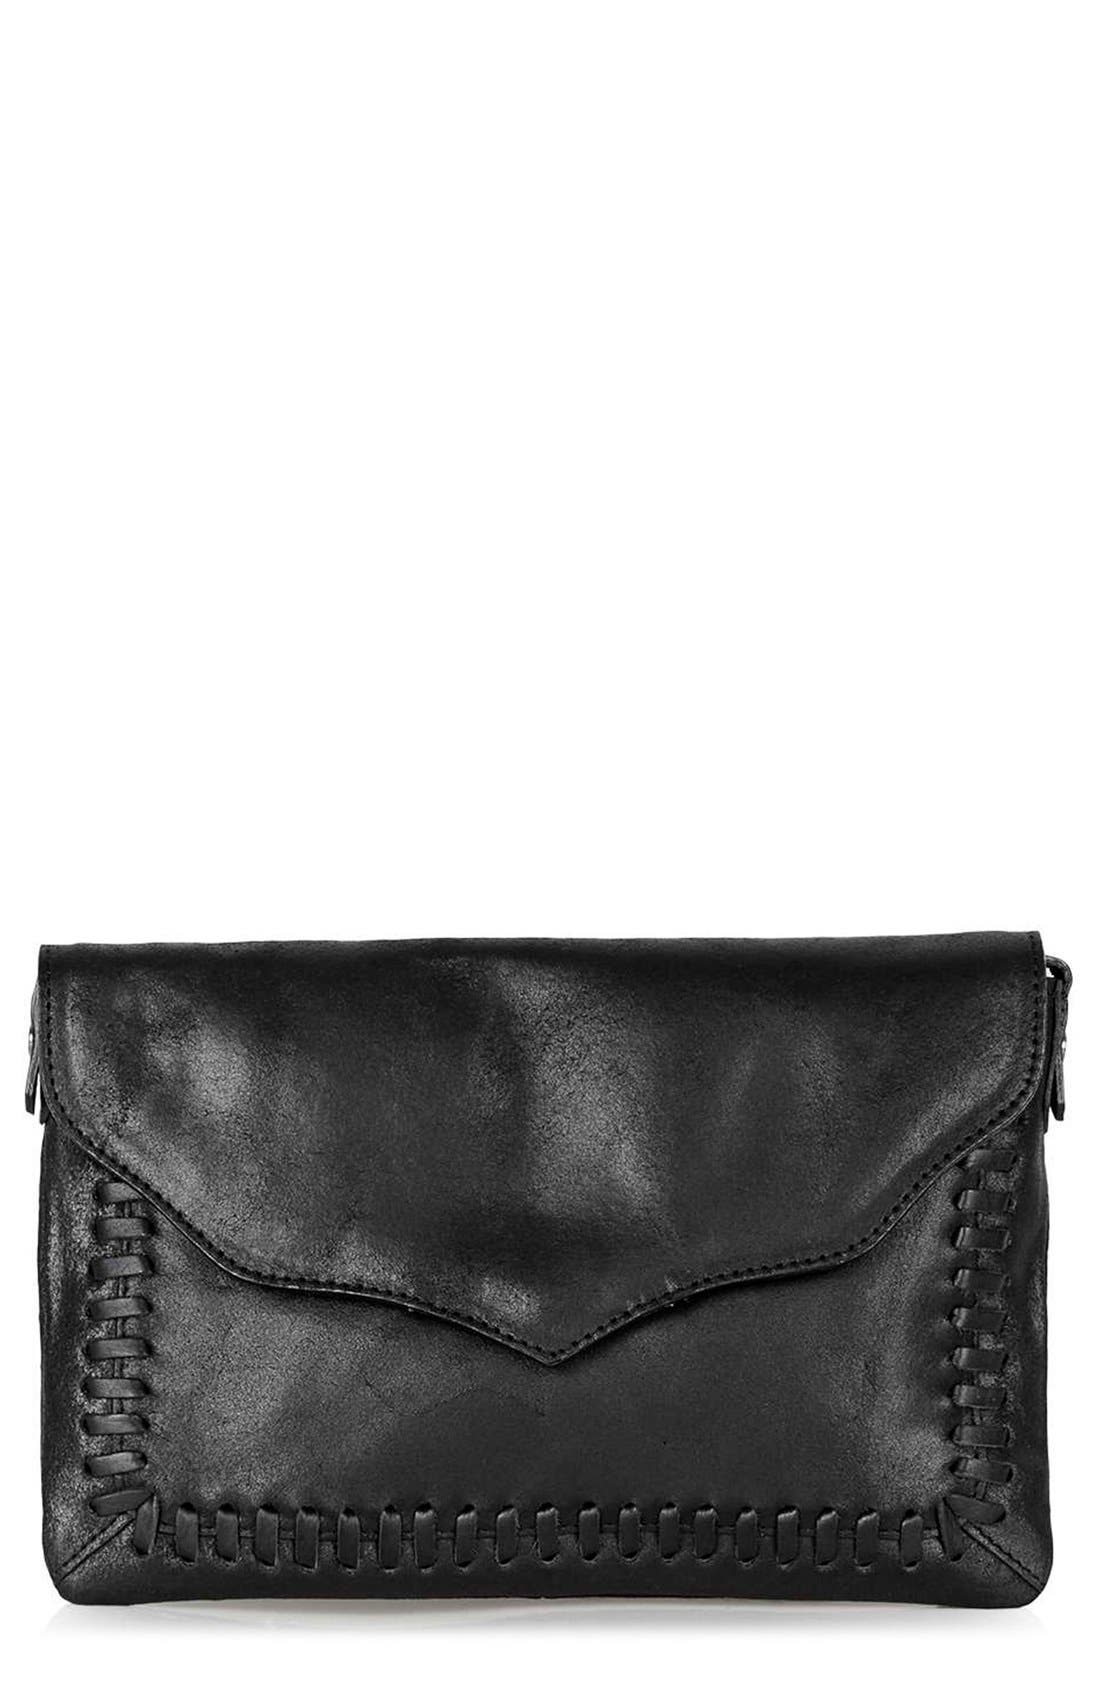 Main Image - Topshop Crackle Whipstitch Leather Crossbody Bag